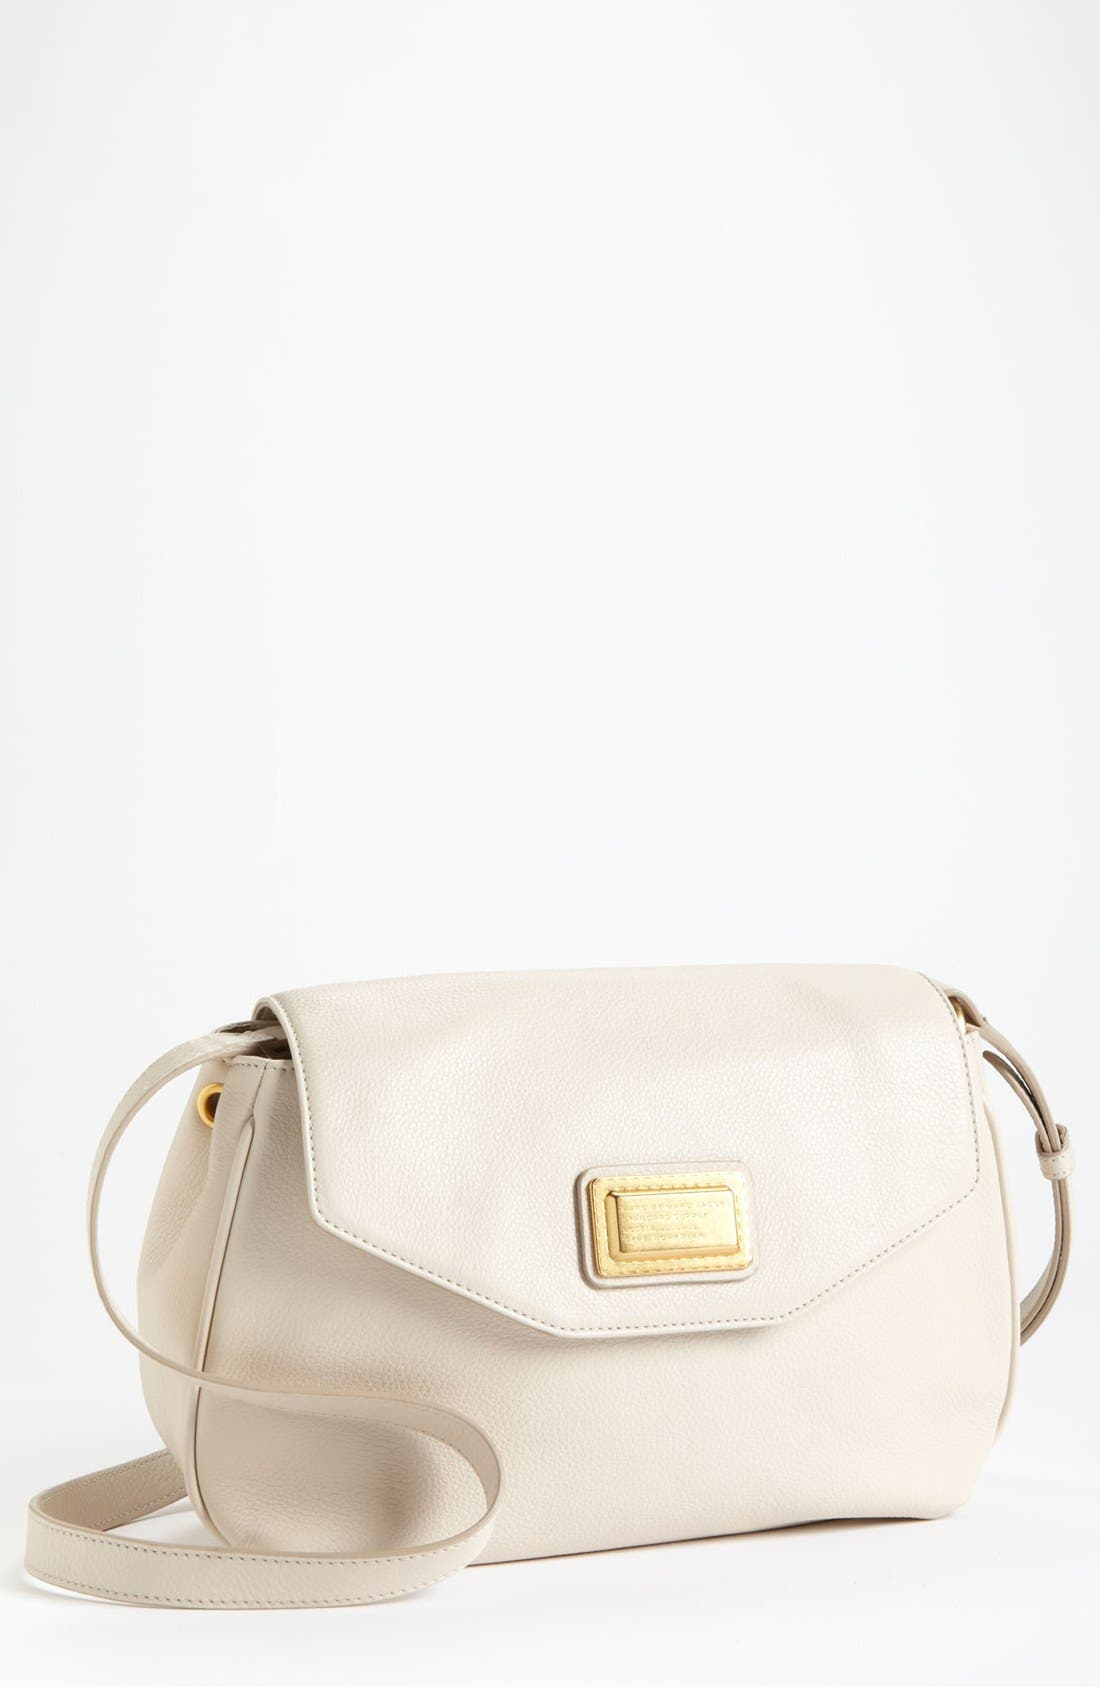 Main Image - MARC BY MARC JACOBS 'Medium Flap' Leather Crossbody Bag